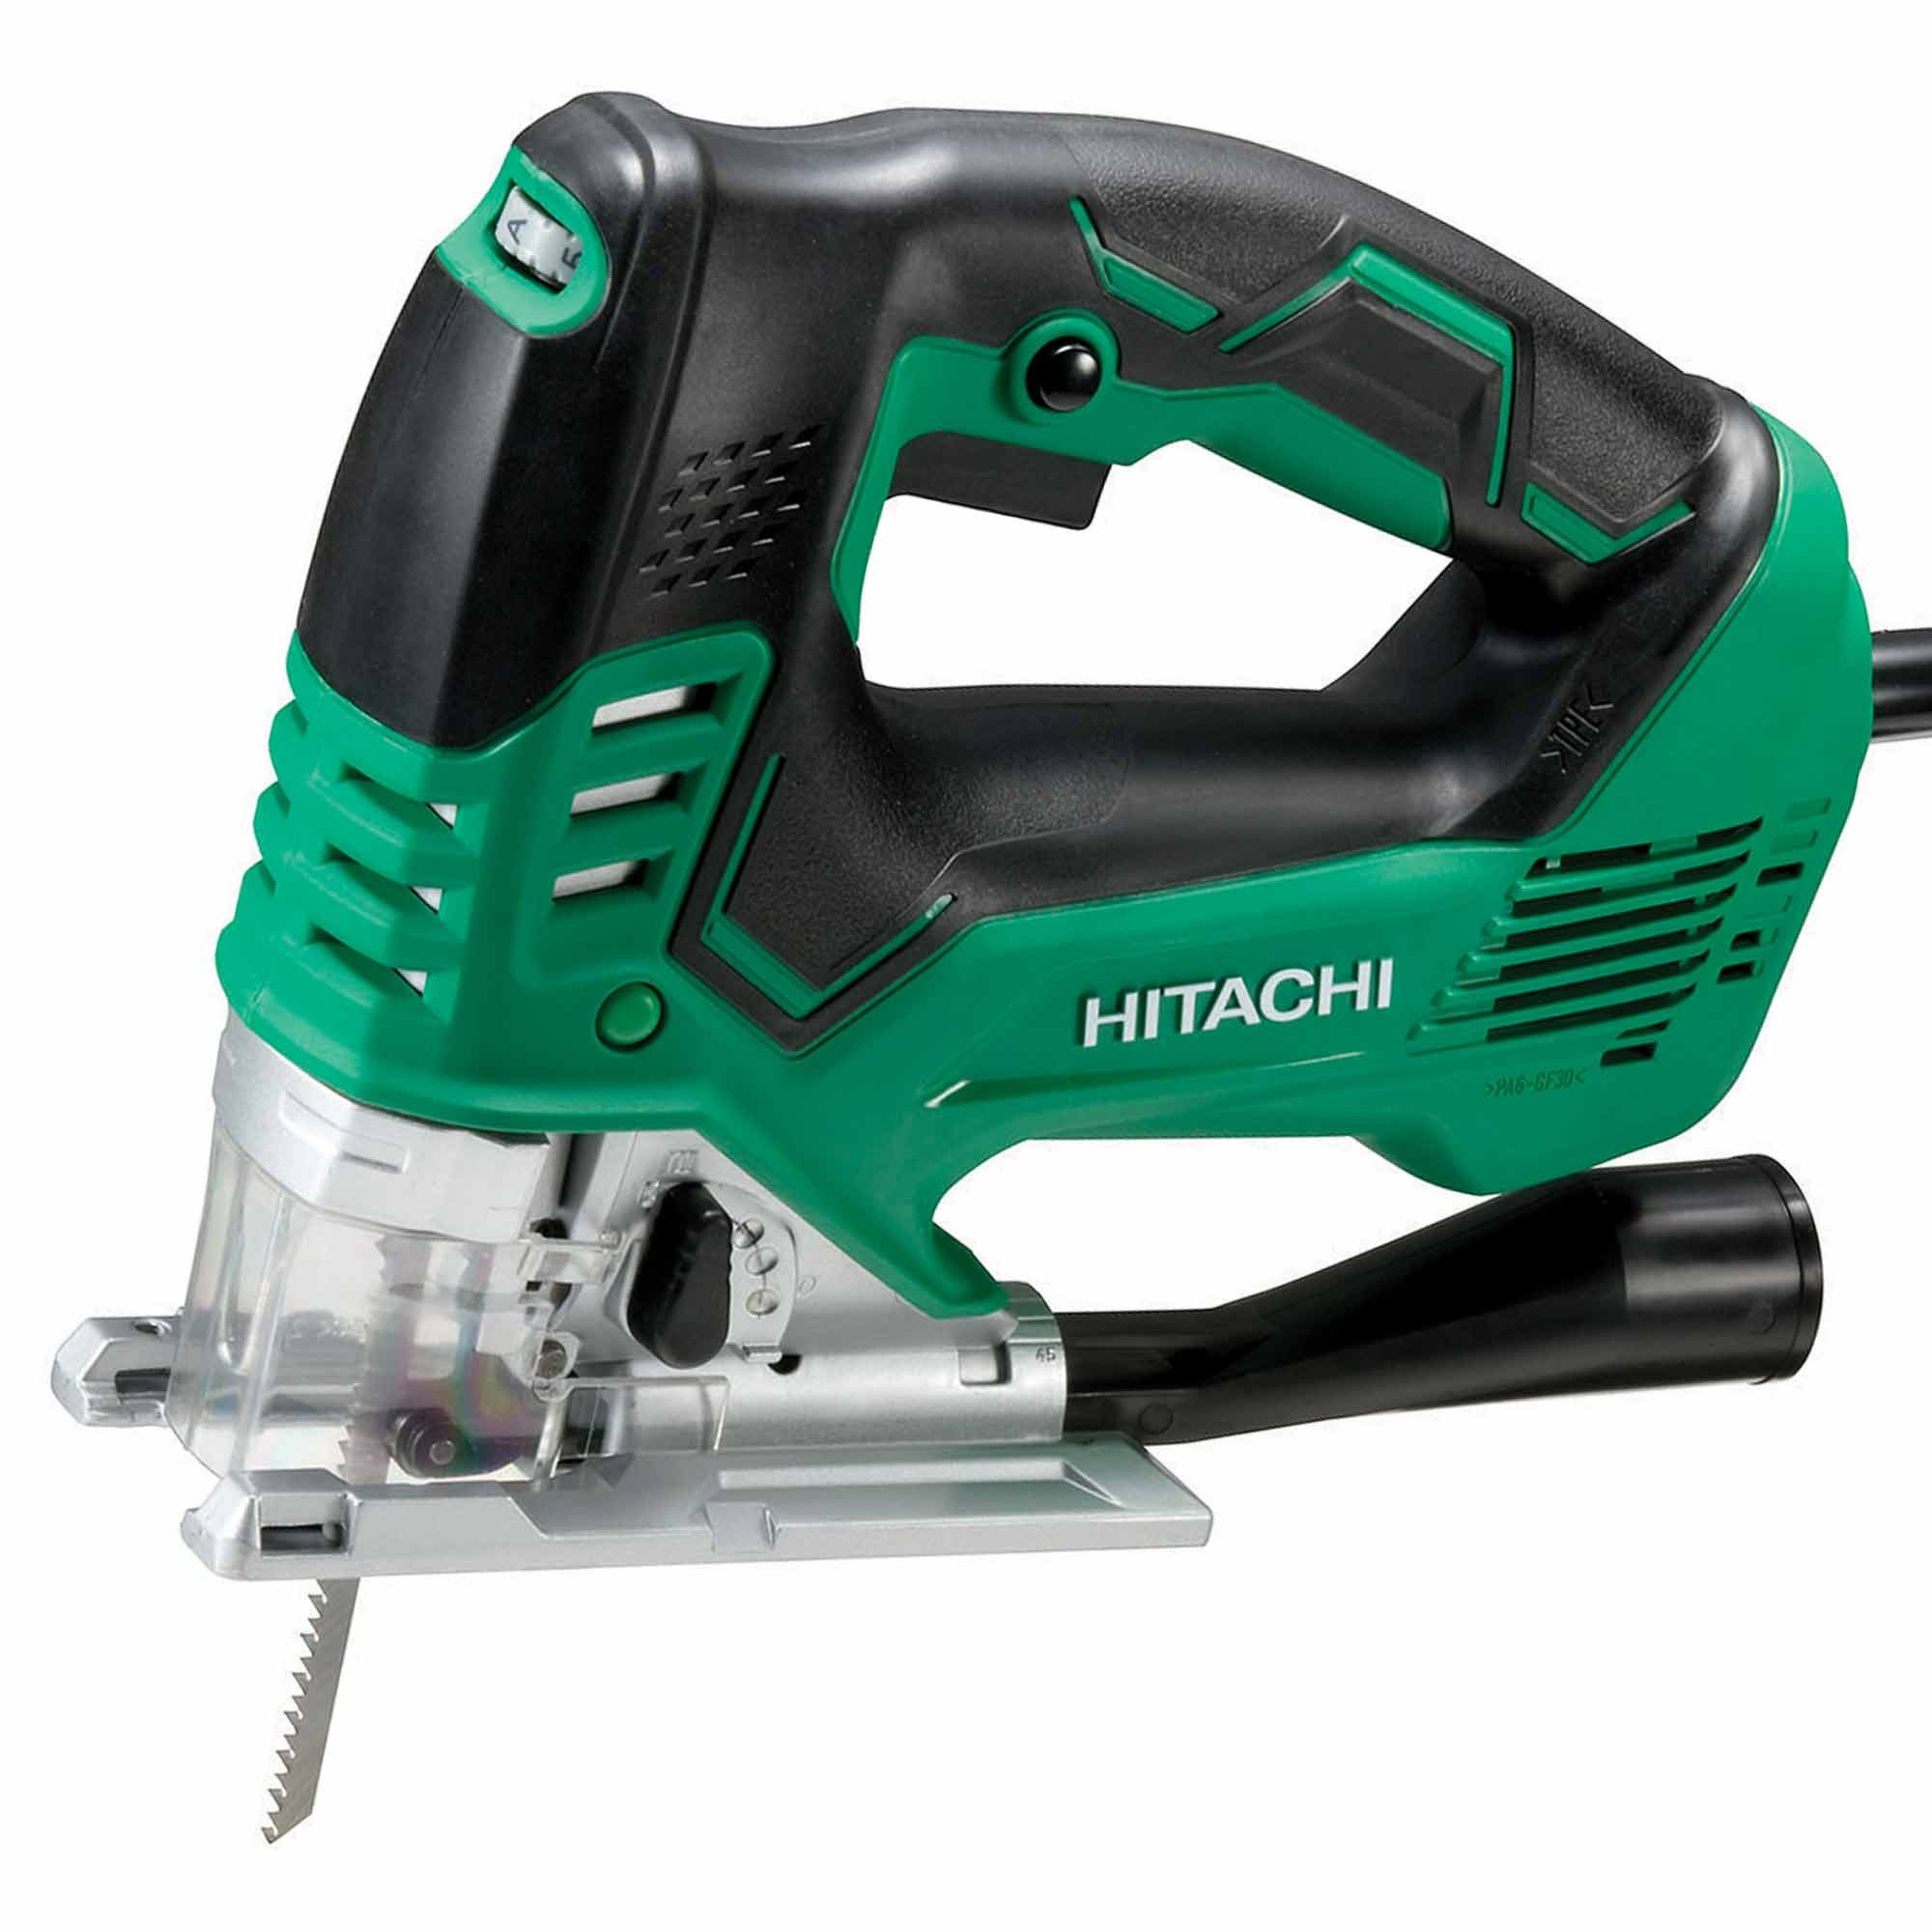 Hitachi CJ160V 800w 160mm Jigsaw 110v